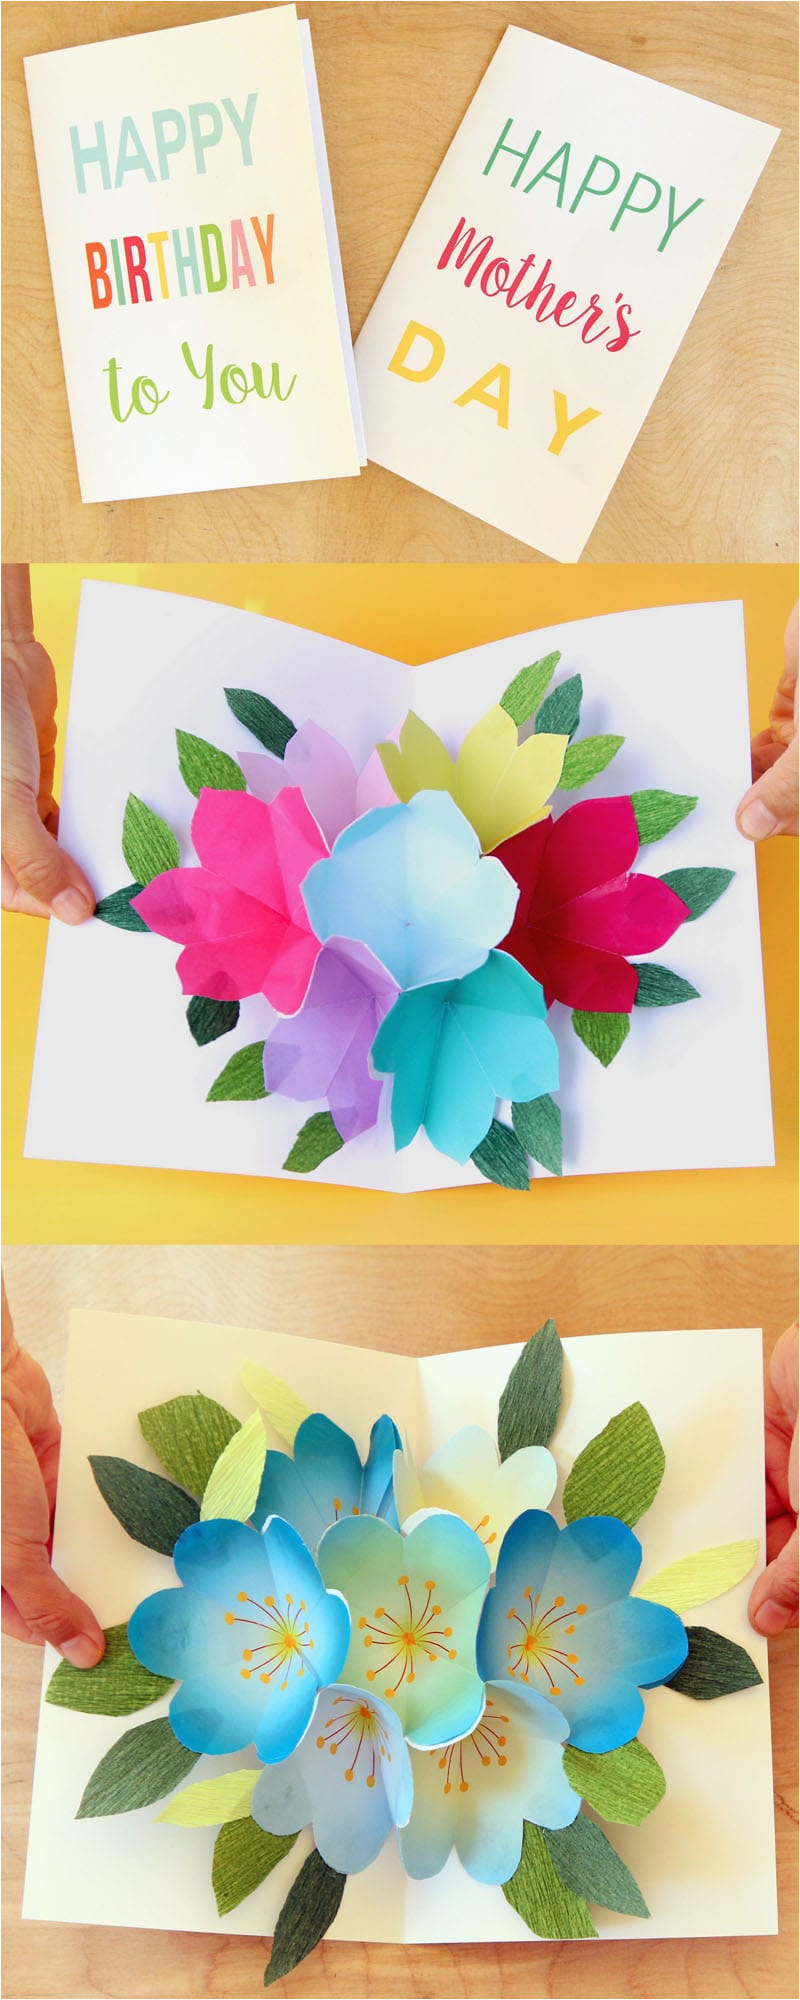 Create And Print Birthday Cards Free Printable Happy Card With Pop Up Bouquet A